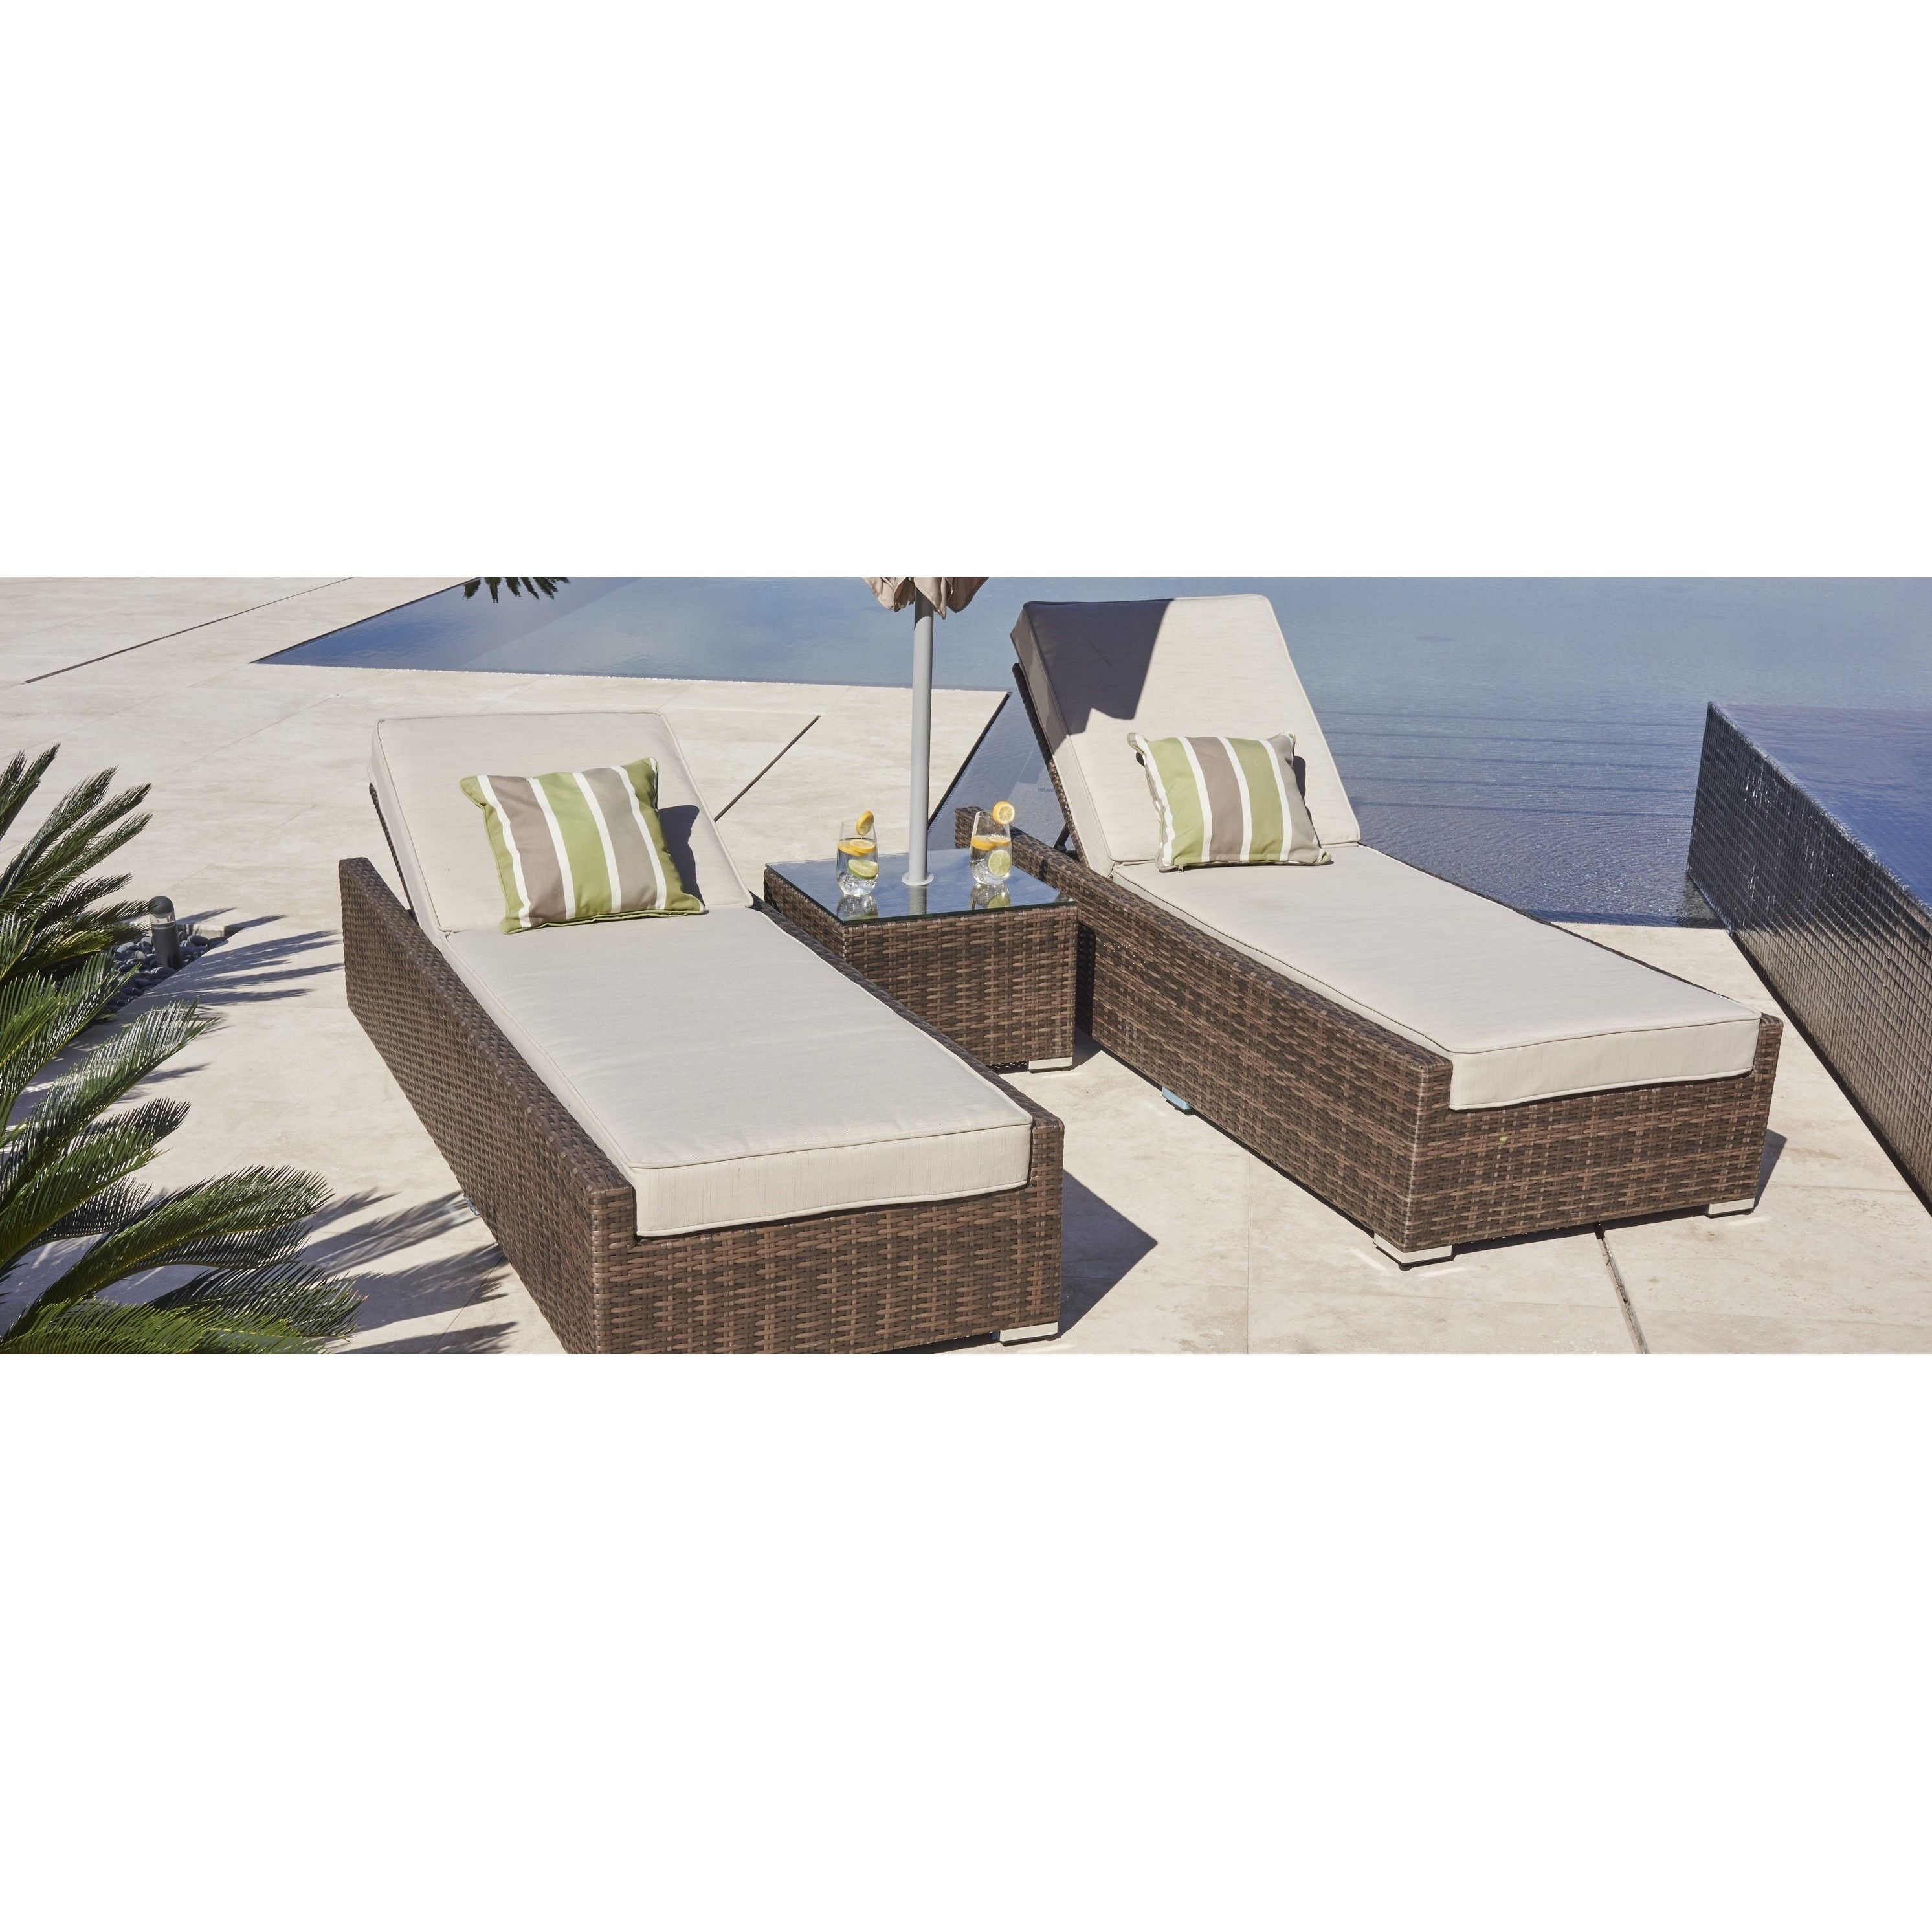 Vida Brown Wicker Outdoor Patio Chaise Lounge Chairs And Side Table